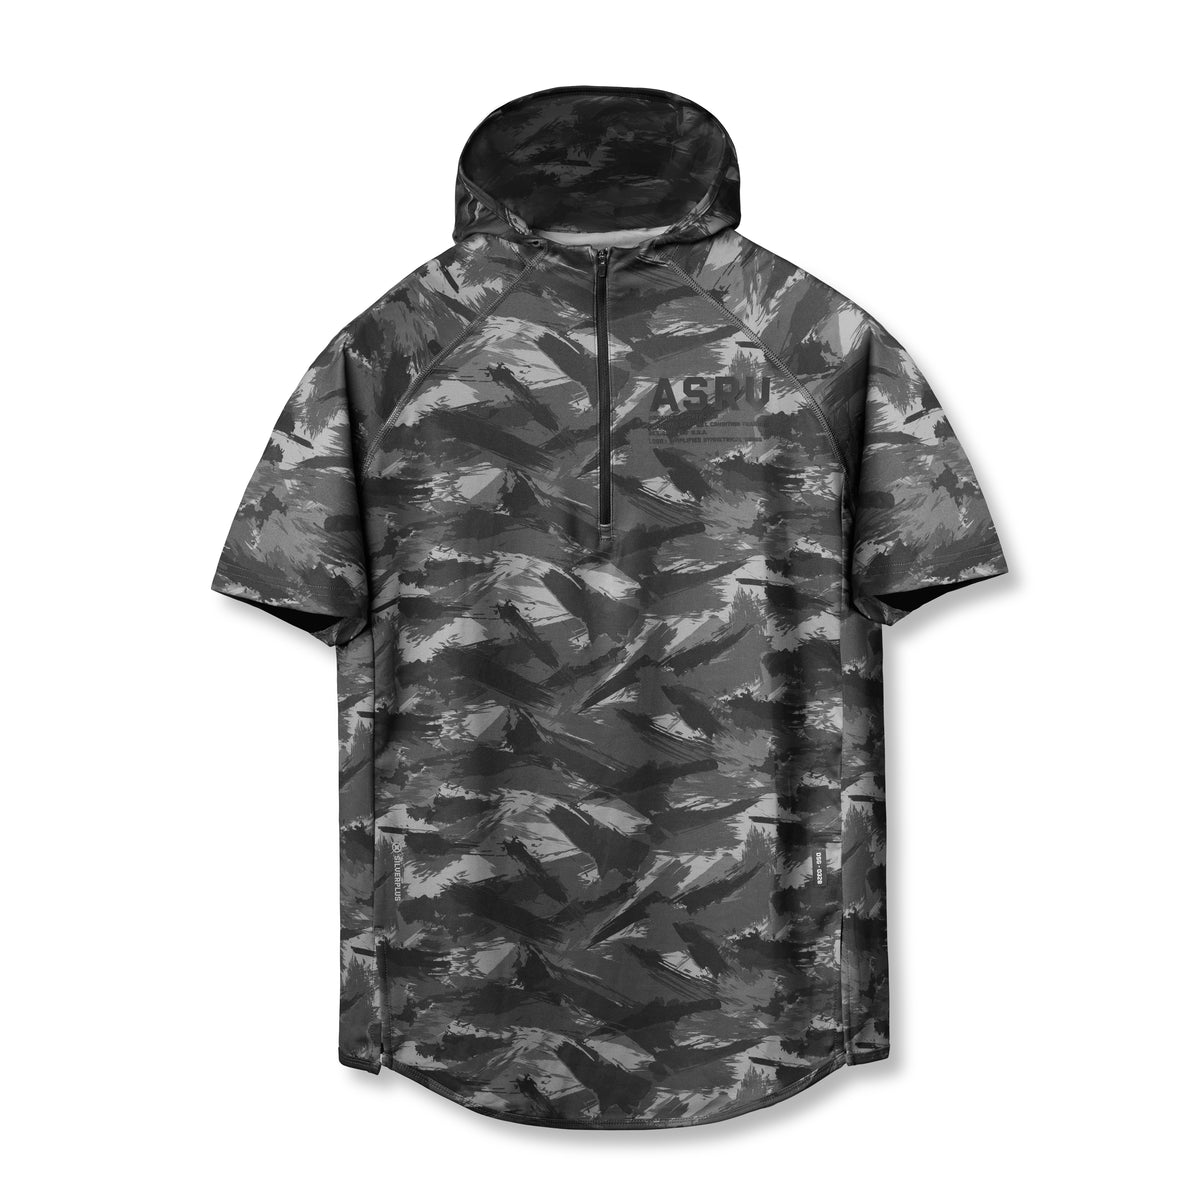 0328. SilverPlus® Fitted Short-Sleeve Hoodie - Black Brushed Camo